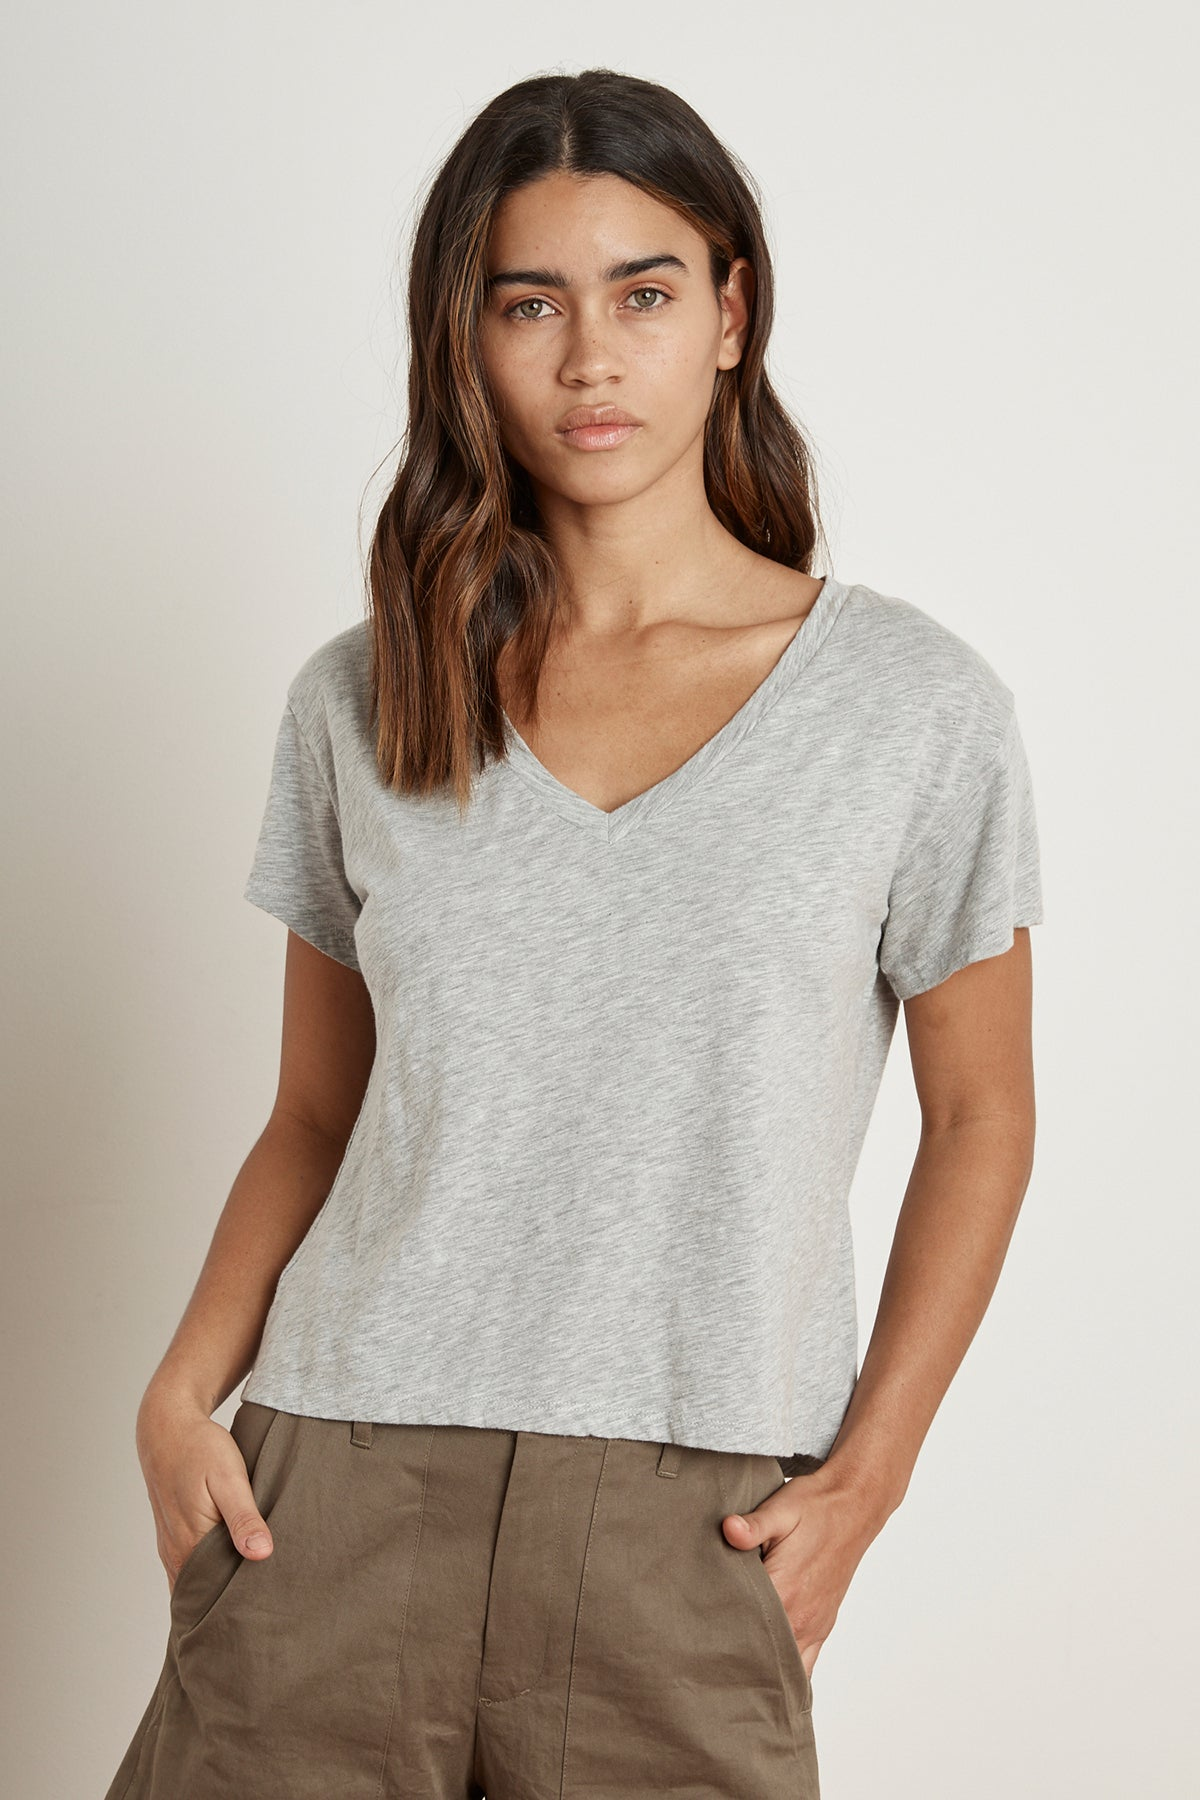 ELVA HEATHER GREY COTTON SLUB V-NECK TEE